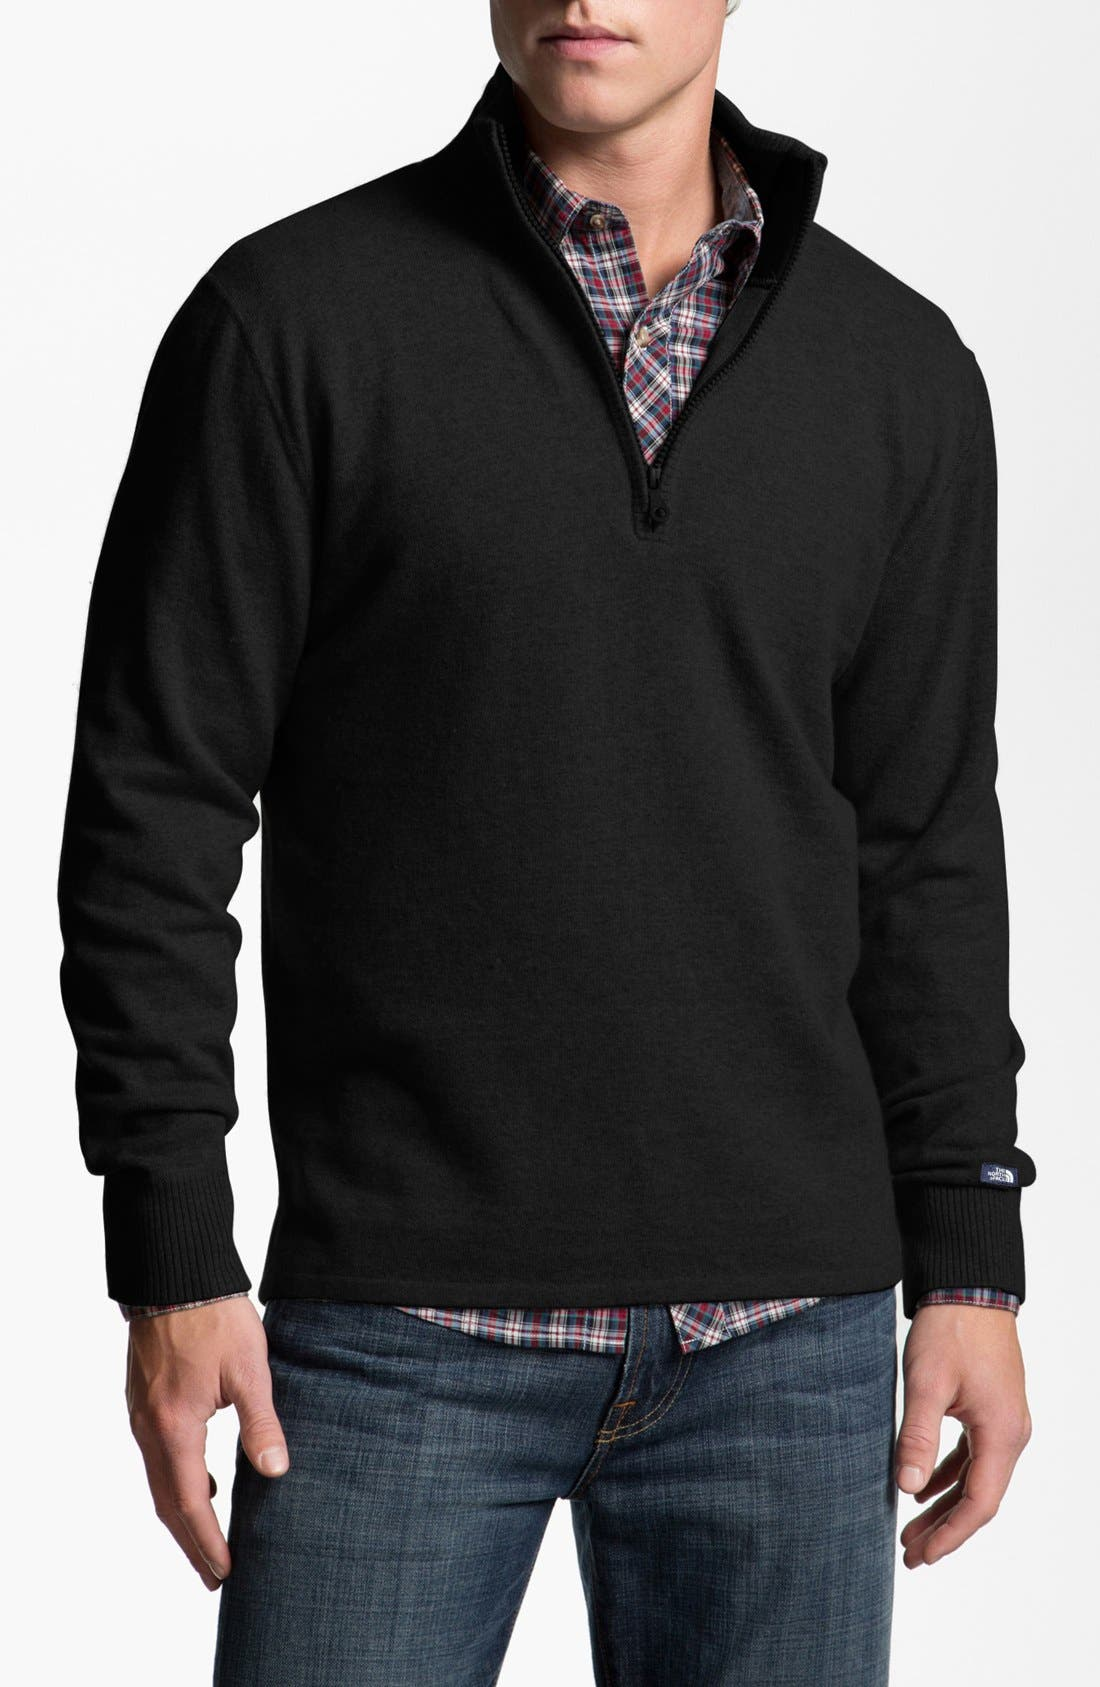 Alternate Image 1 Selected - The North Face 'Mt. Tam' Mock Neck Sweater